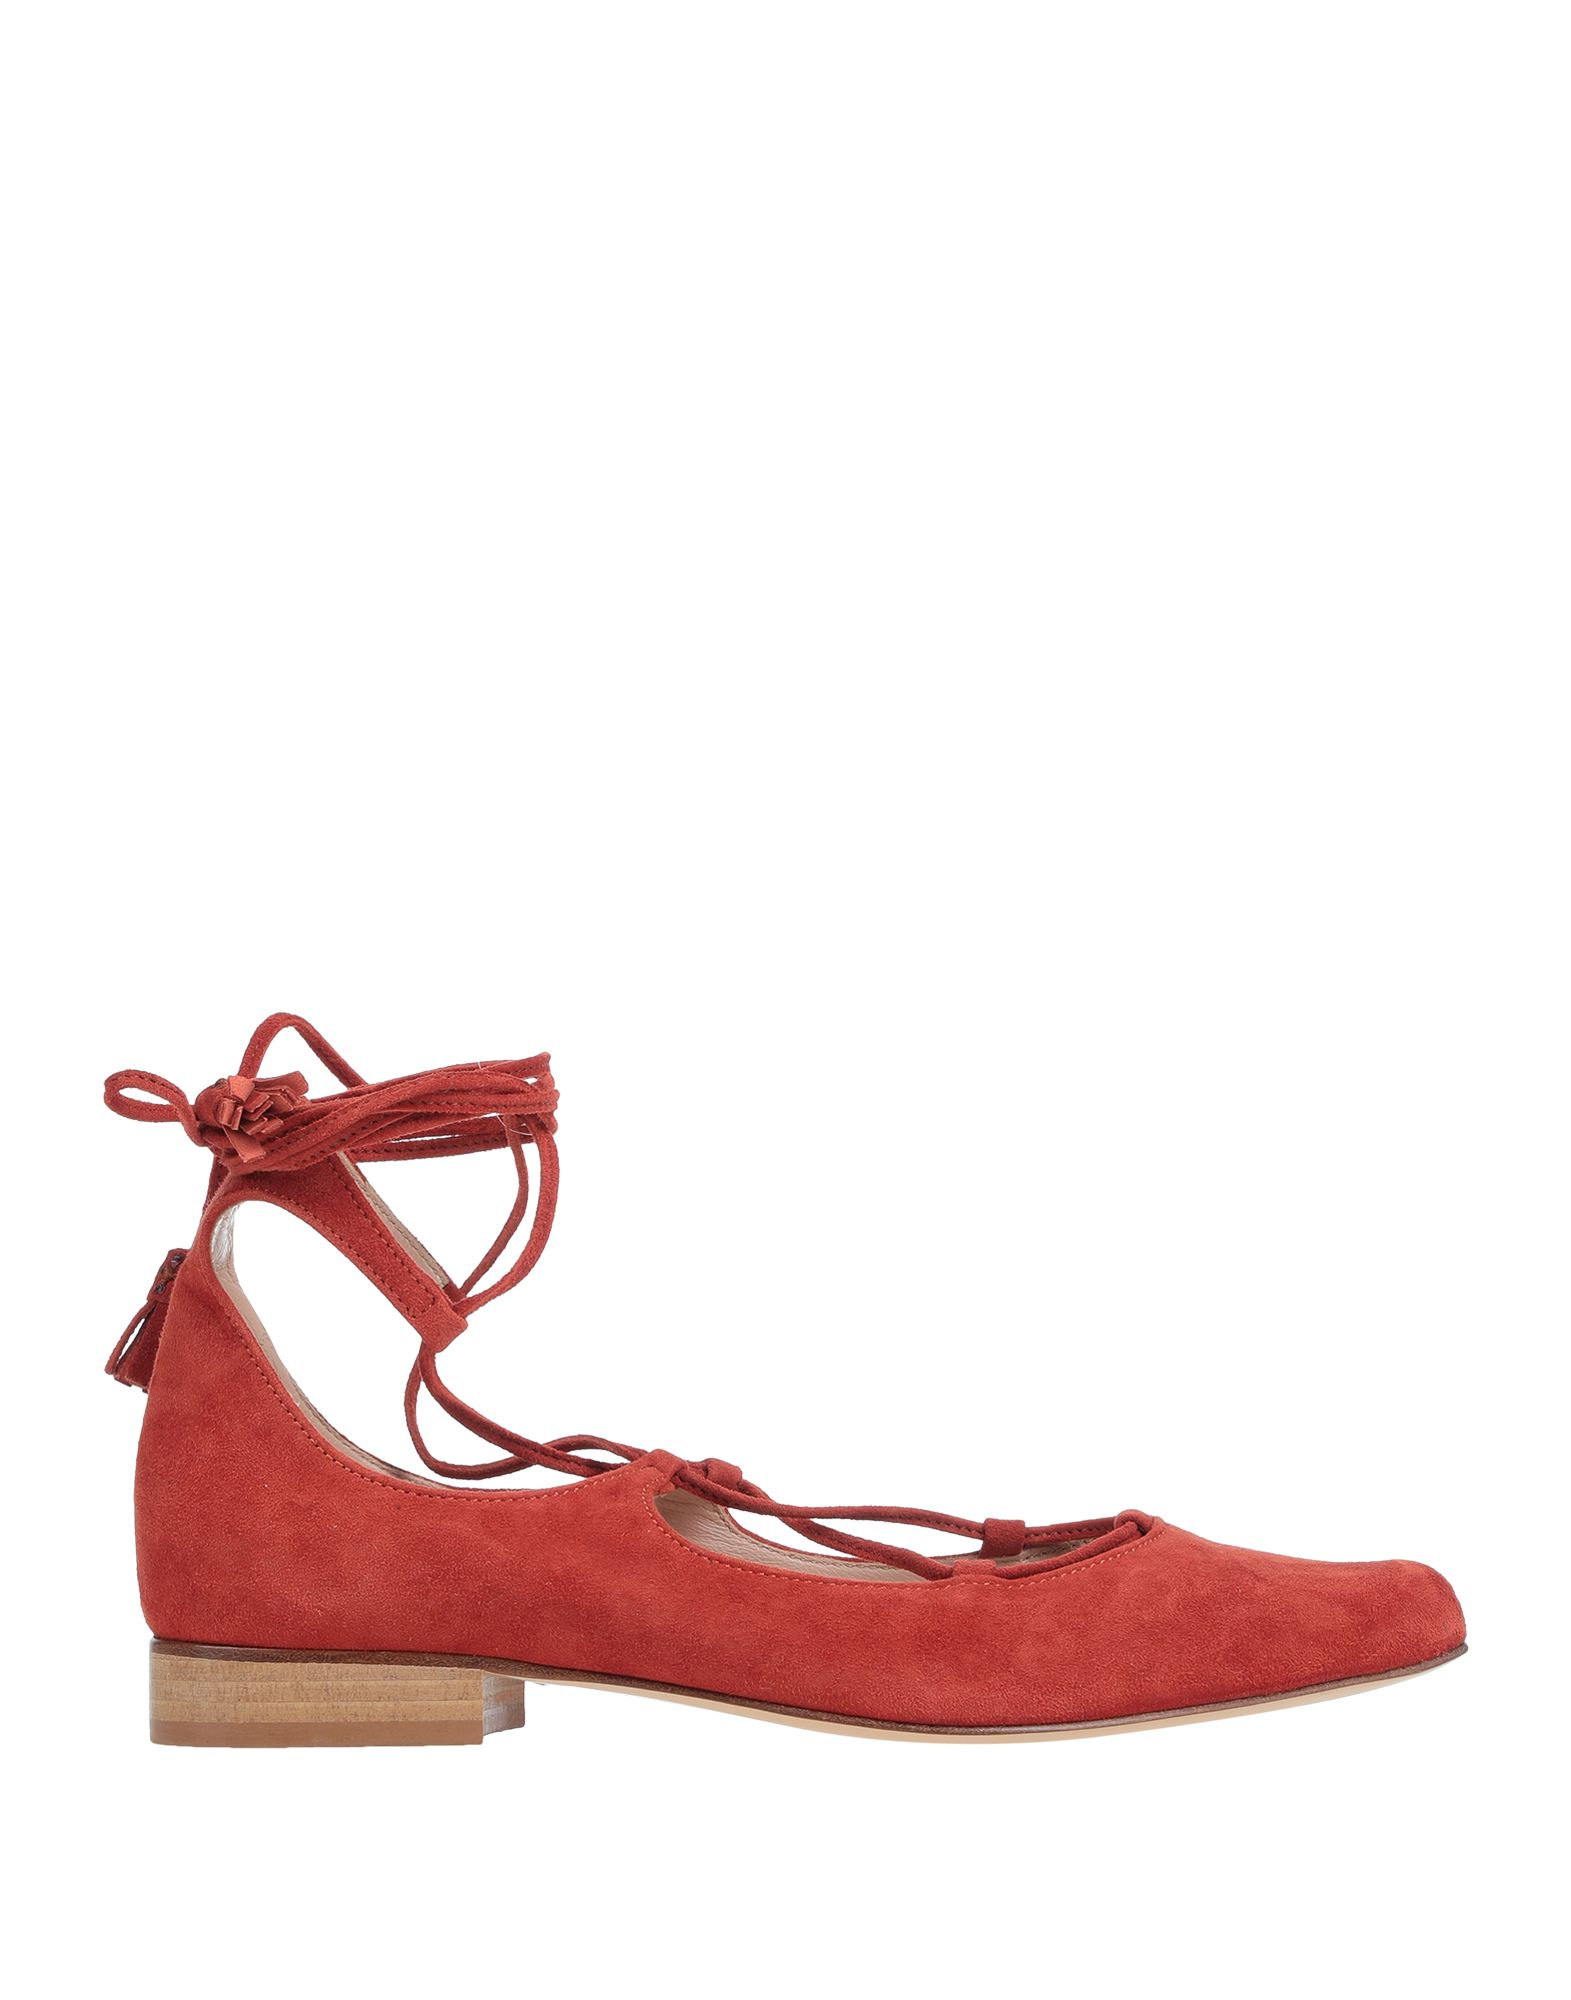 DONDUP Ballet flats. sueded effect, tassels, basic solid colour, wrapping straps closure, narrow toeline, leather lining, leather sole, square heel, contains non-textile parts of animal origin, large sized. Soft Leather